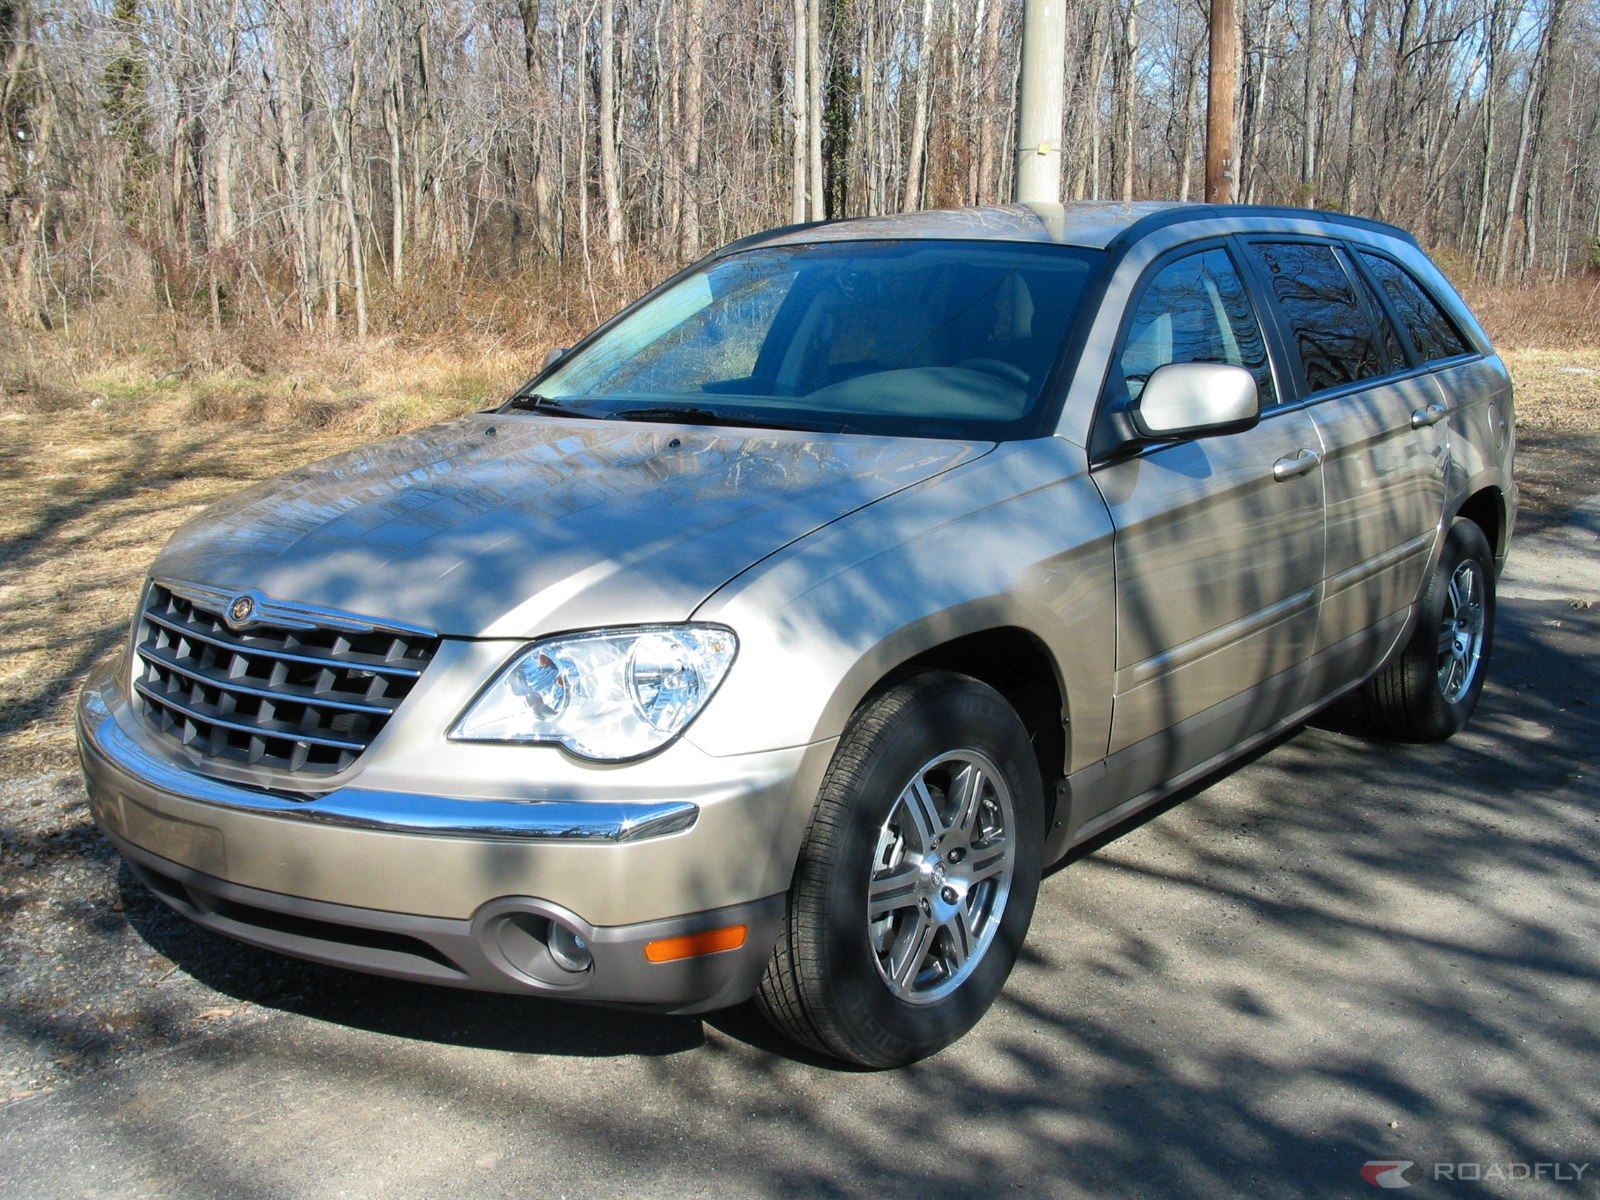 2007 Chrysler Pacifica #7